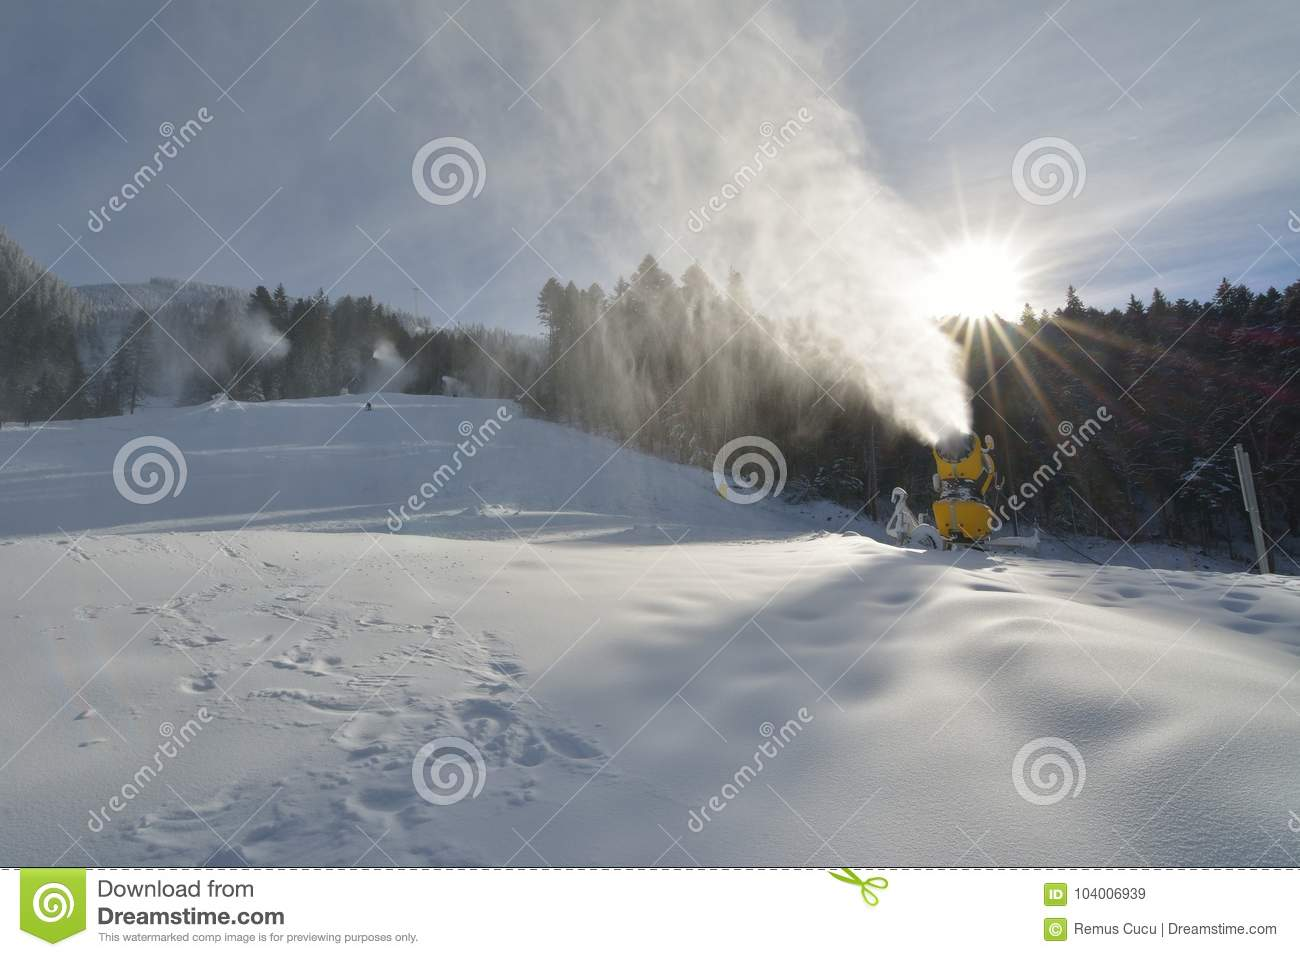 snow cannons making artificial snow on a ski slope in poiana brasov